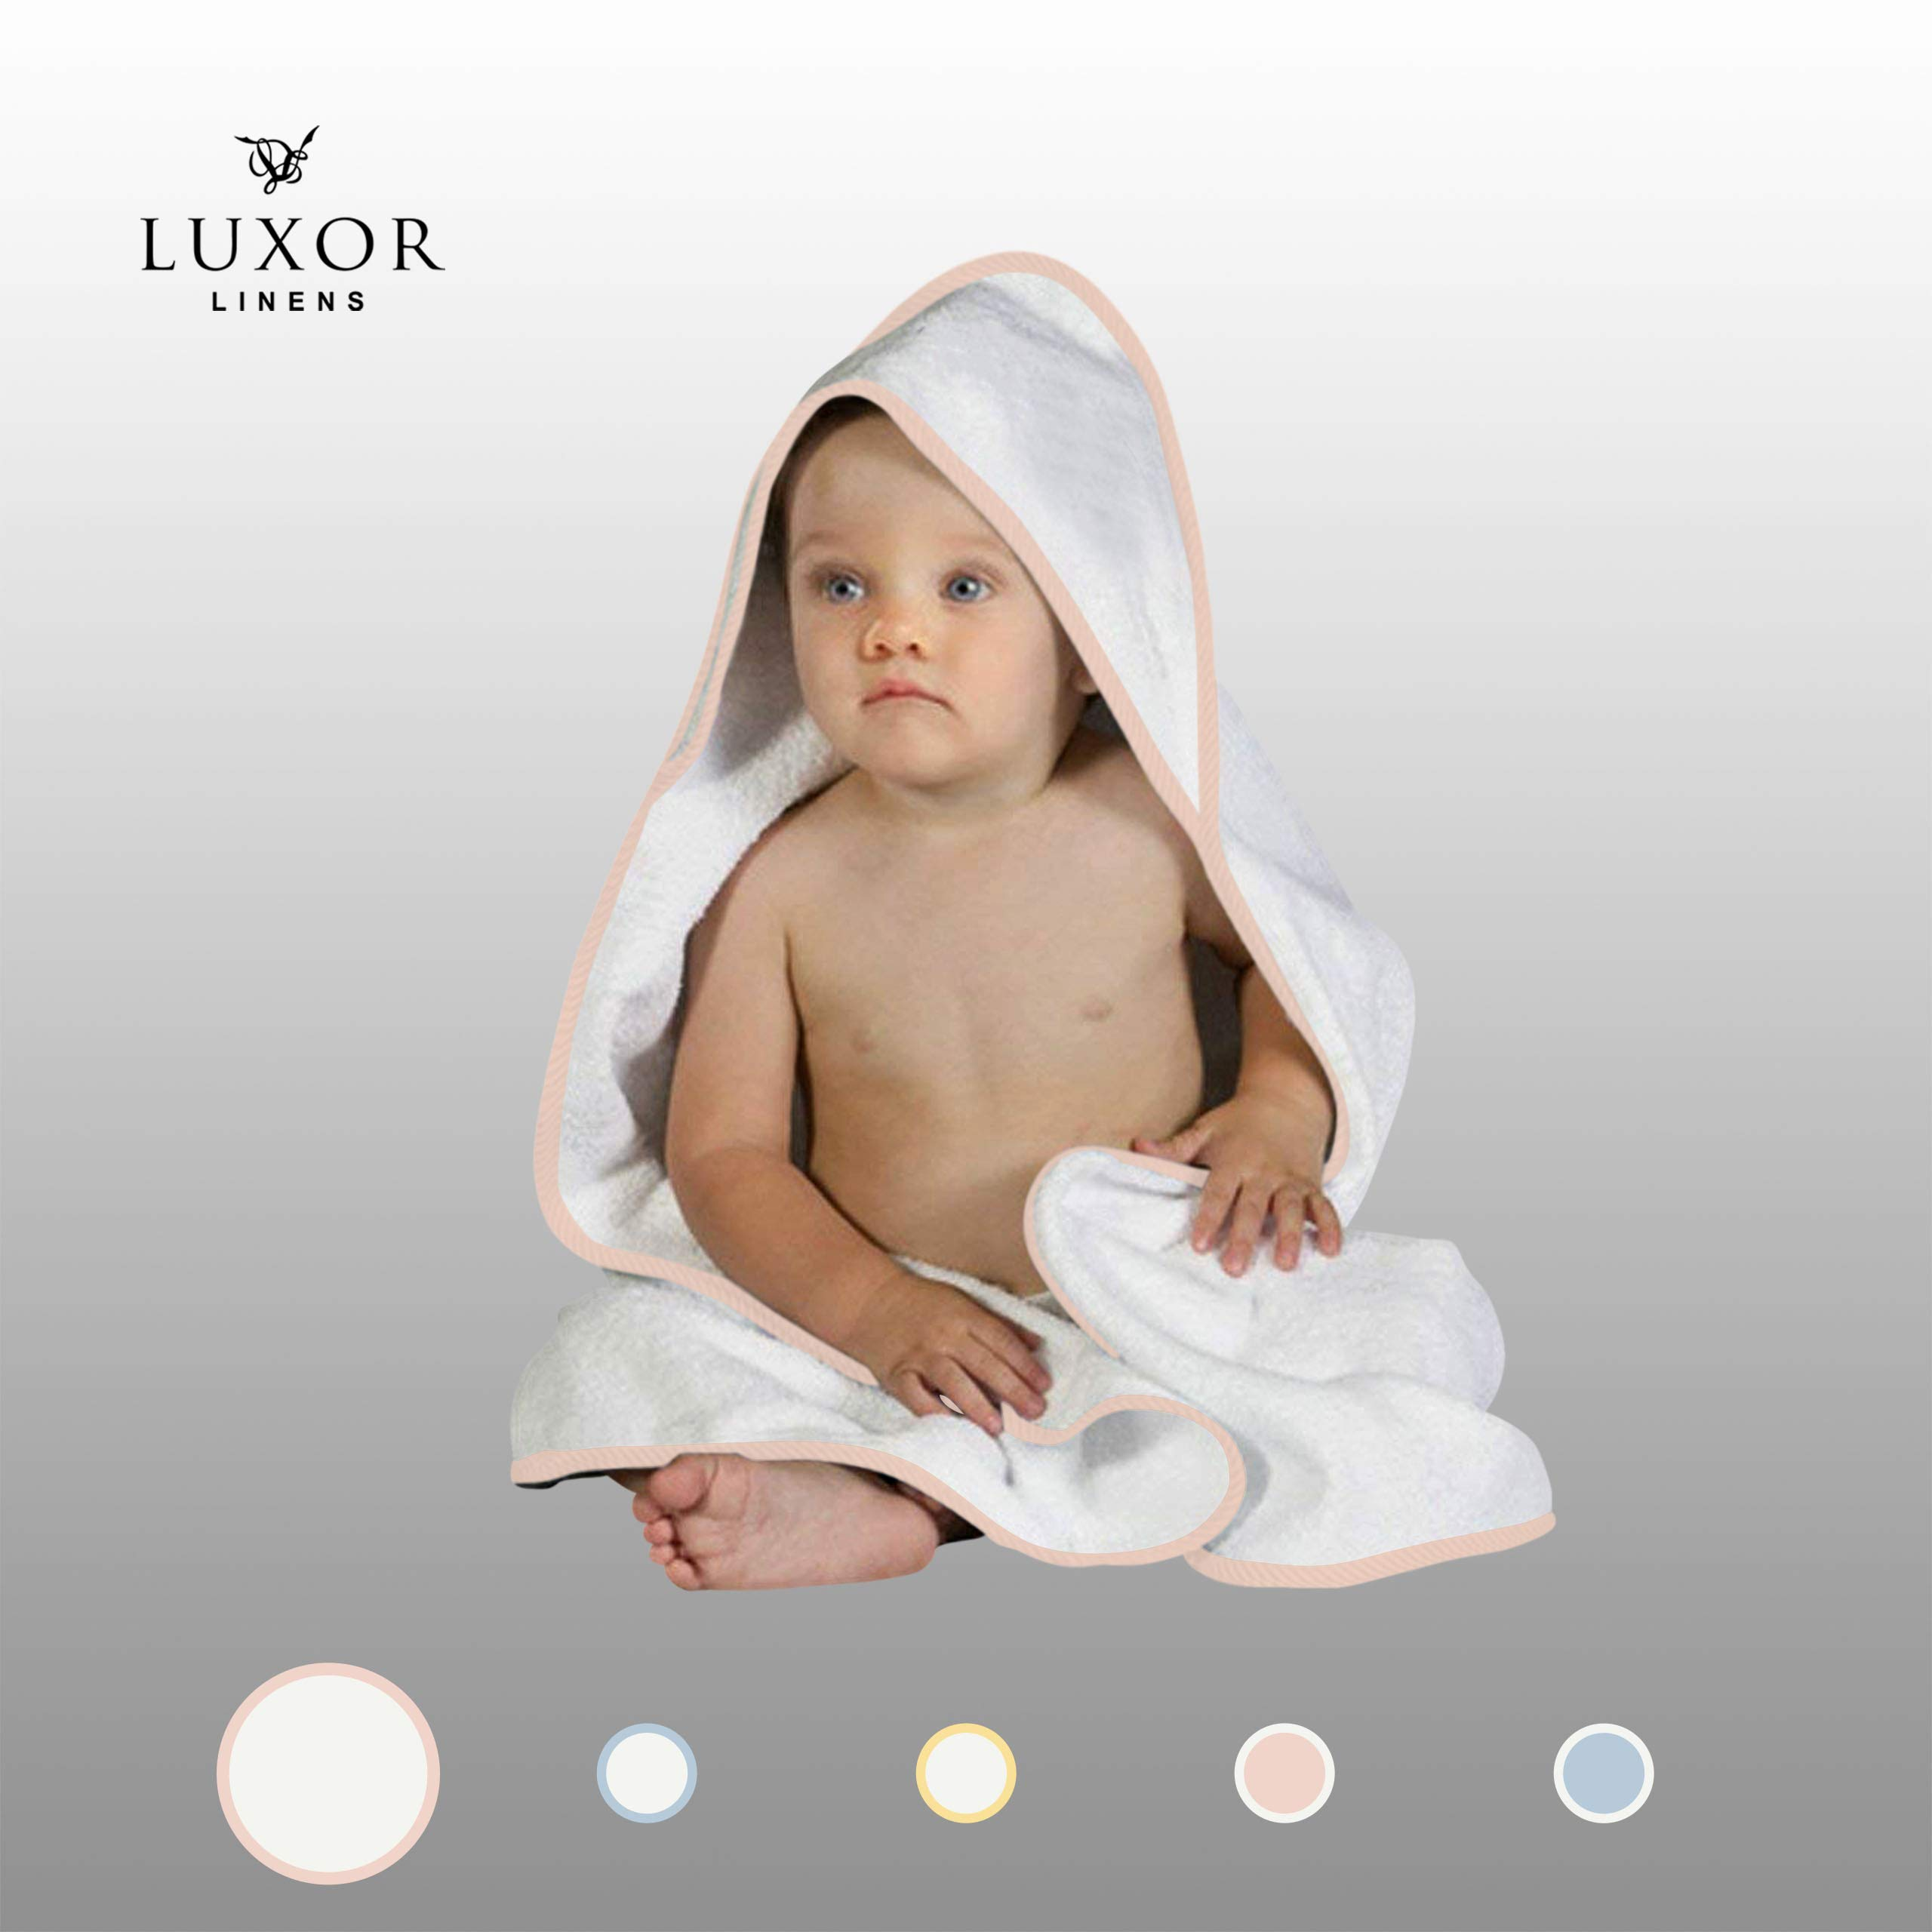 Luxor Linens 100% Super Absorbent Cotton Baby Hooded Terry Towel (White-Pink) Vienna Collection